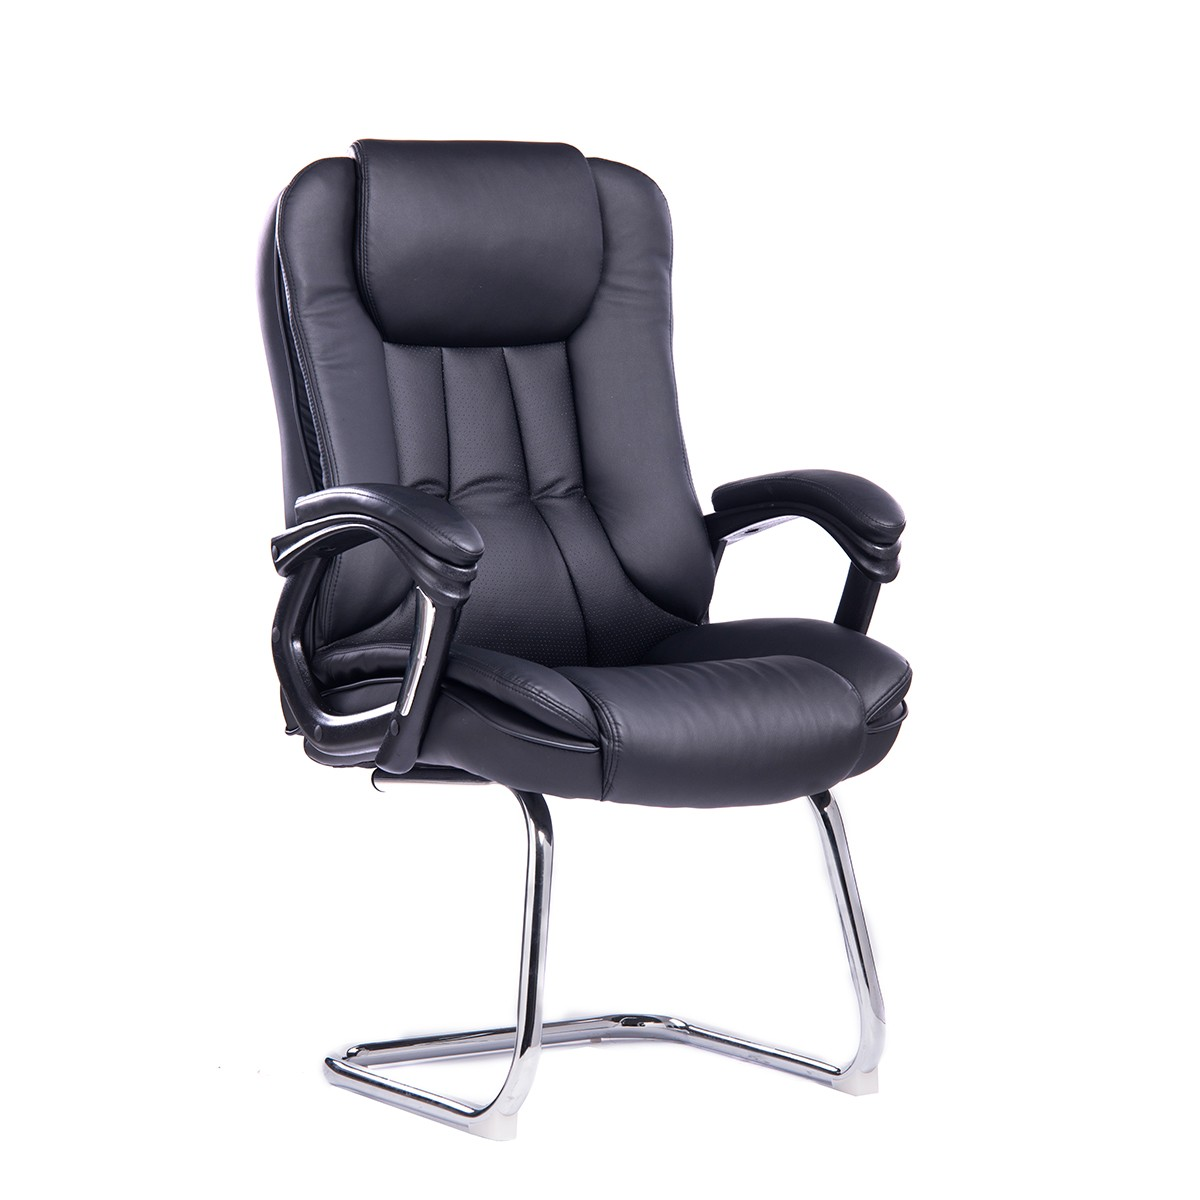 Office Armchair DRESDEN Fixed Skate, Plating, Similpiel Black